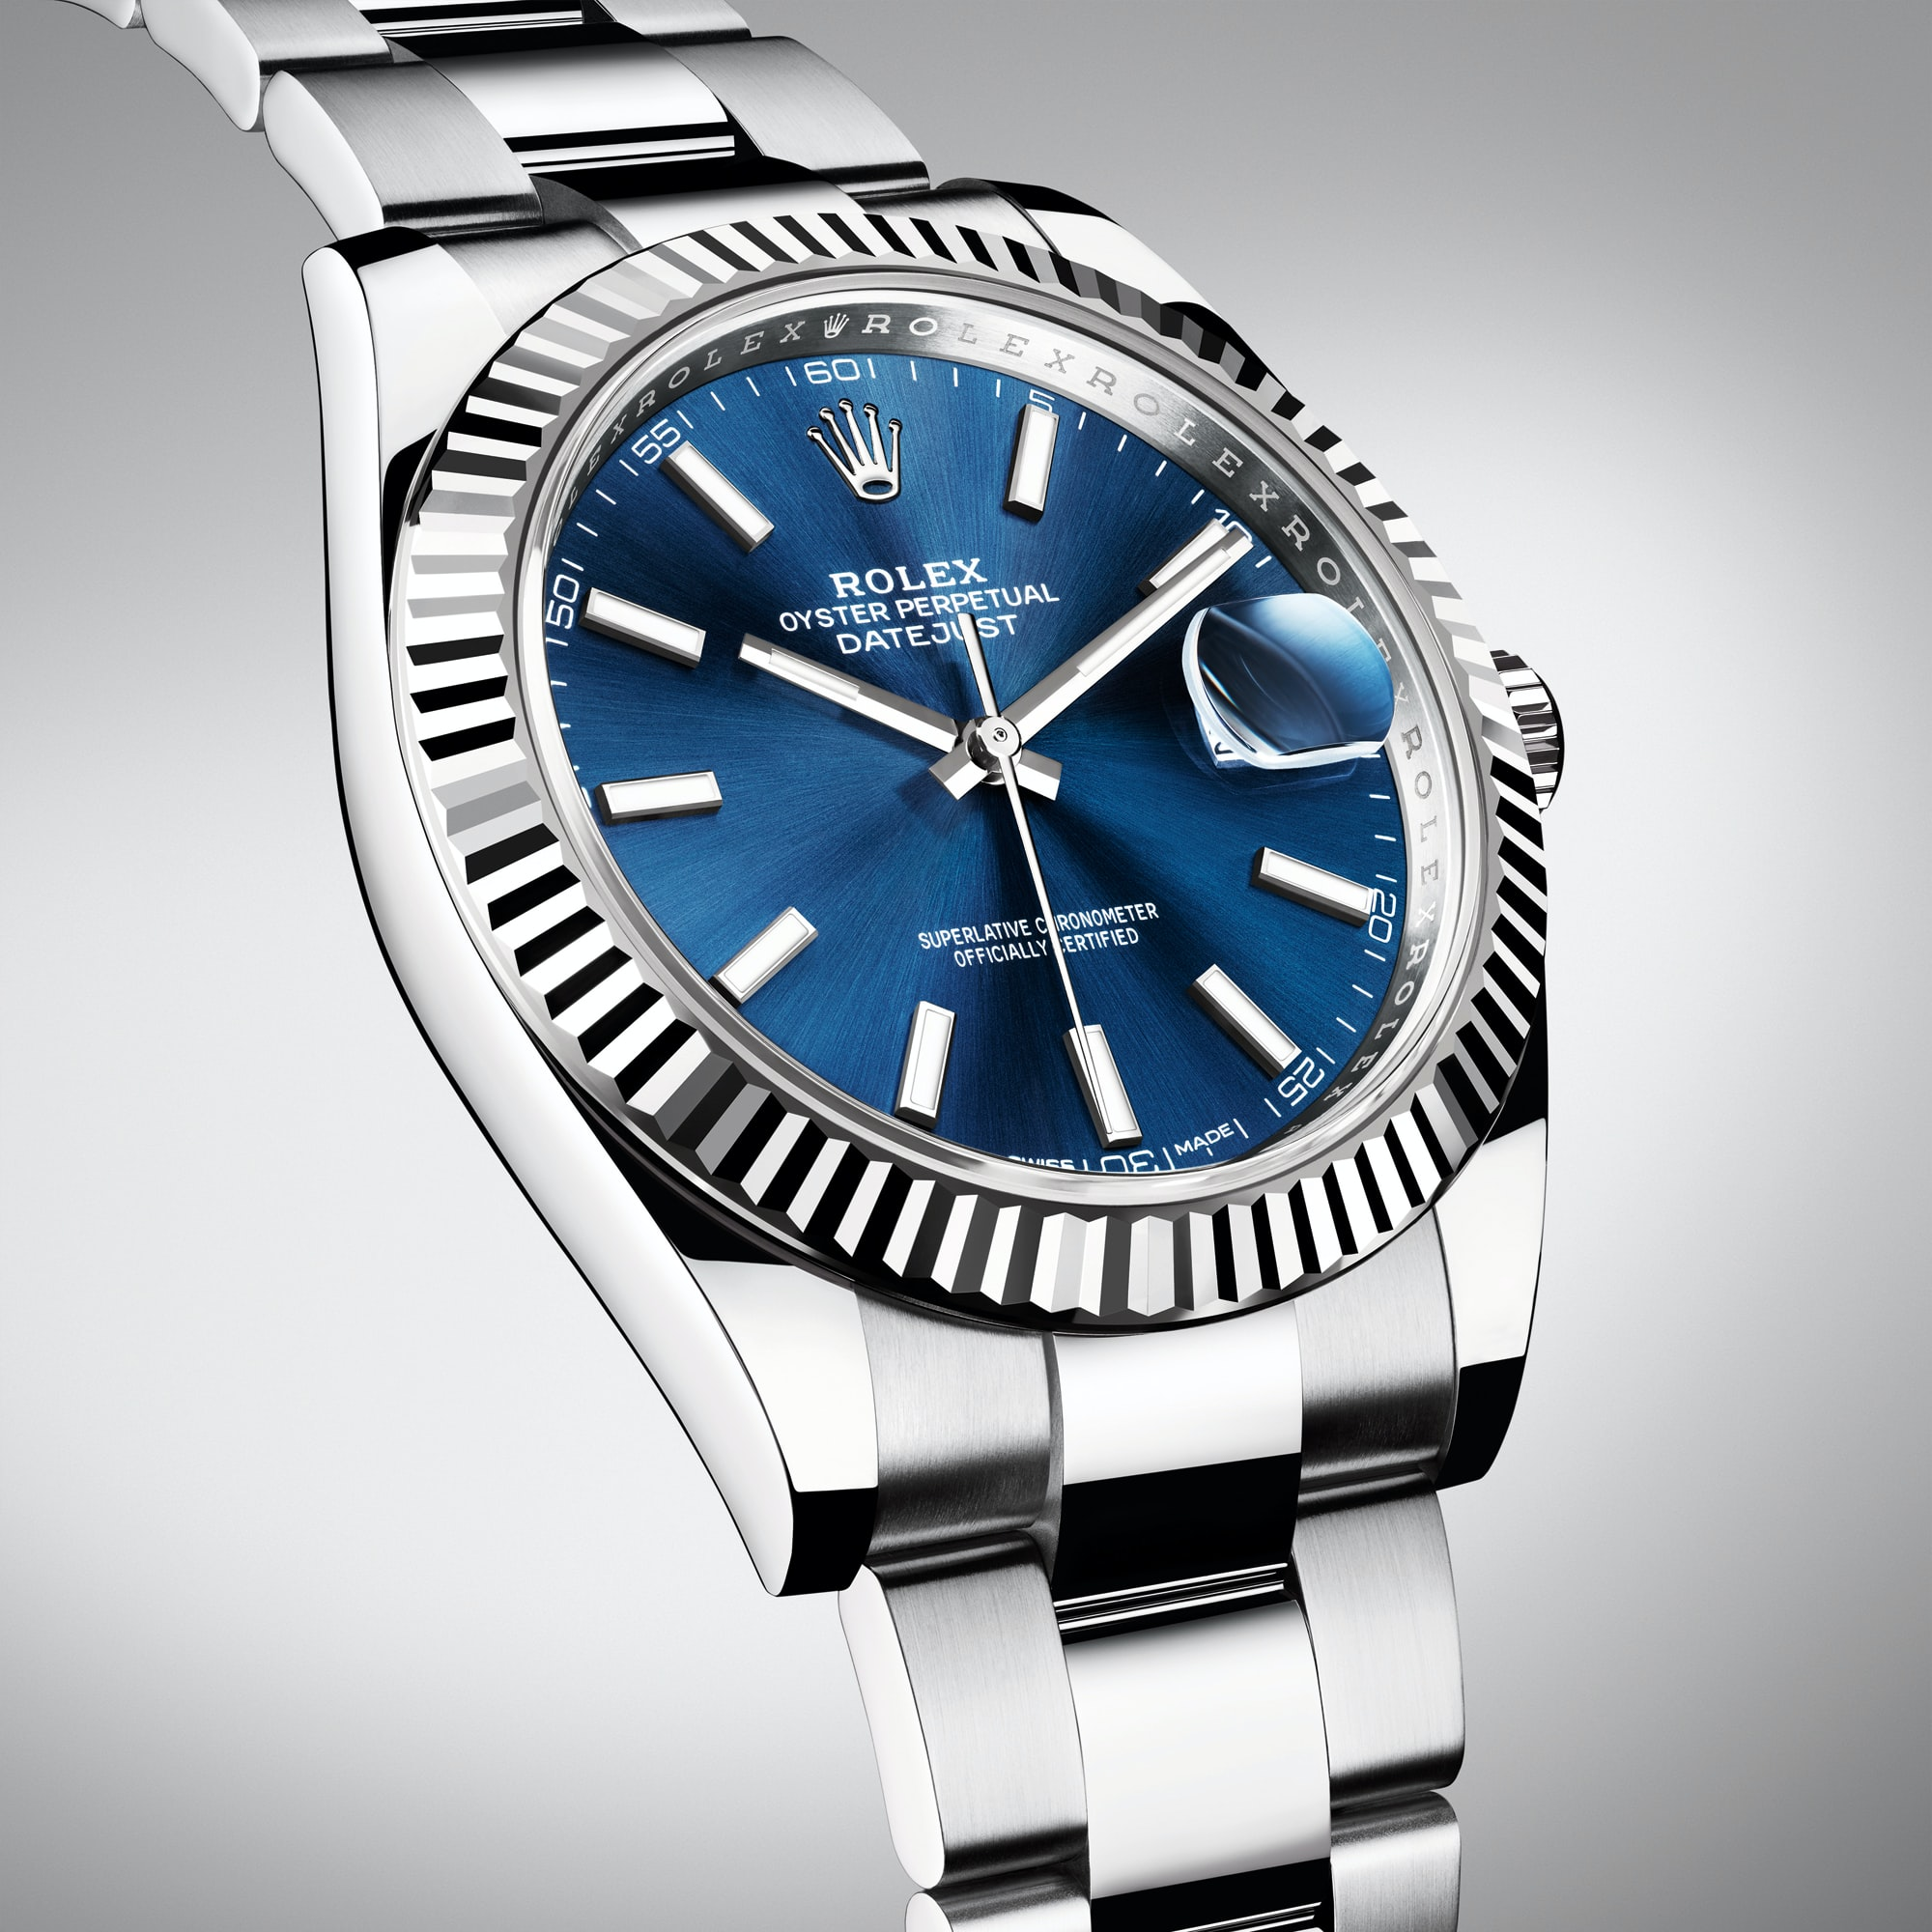 Introducing The Rolex Datejust 41, Now In Stainless Steel